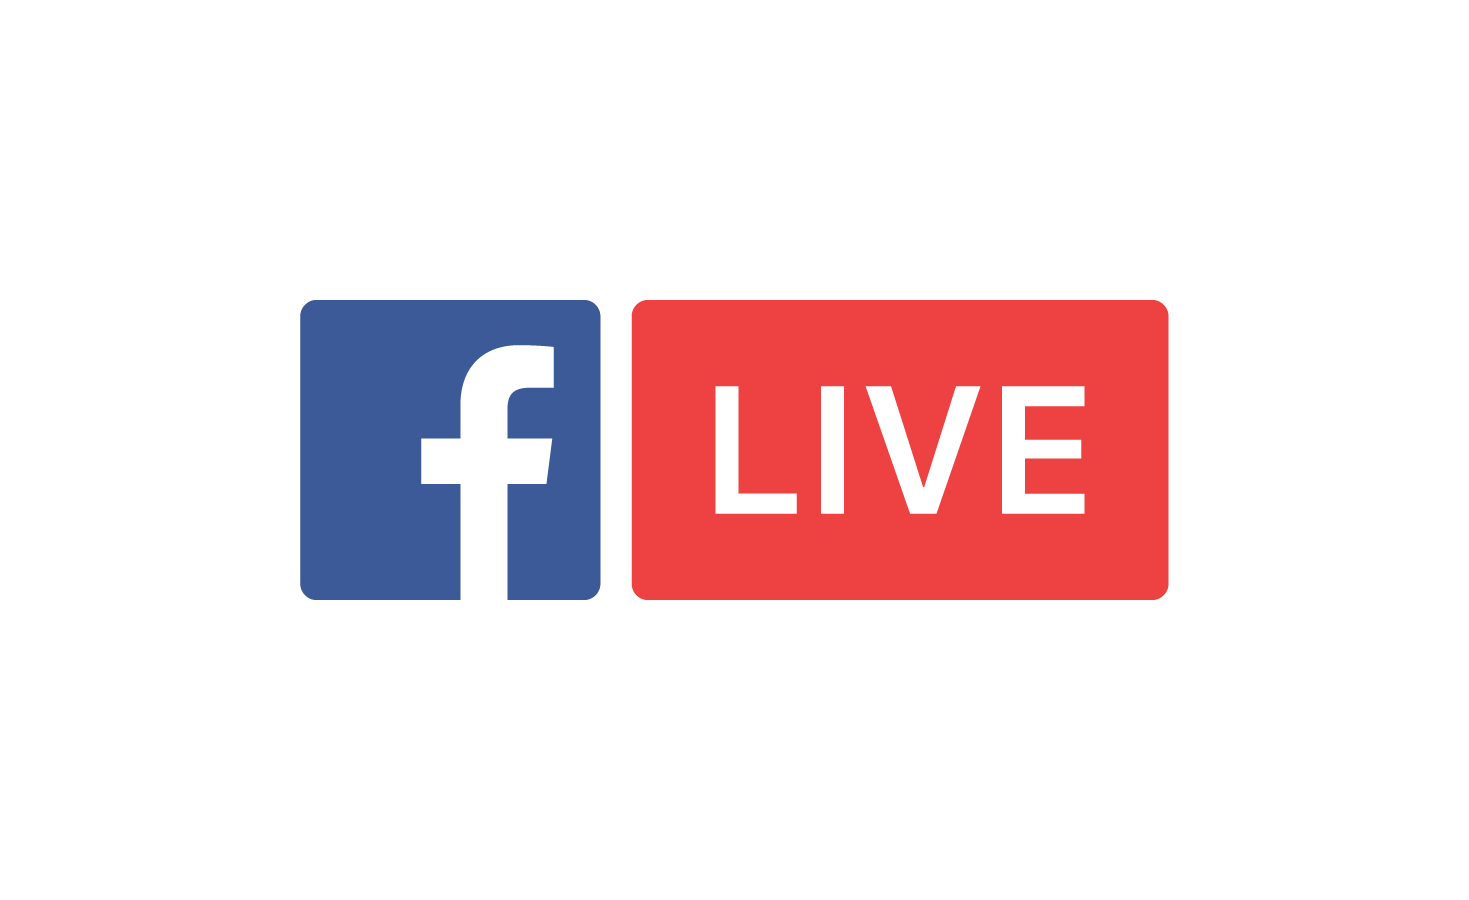 Facebook logo vector png. Inc common stock nasdaq